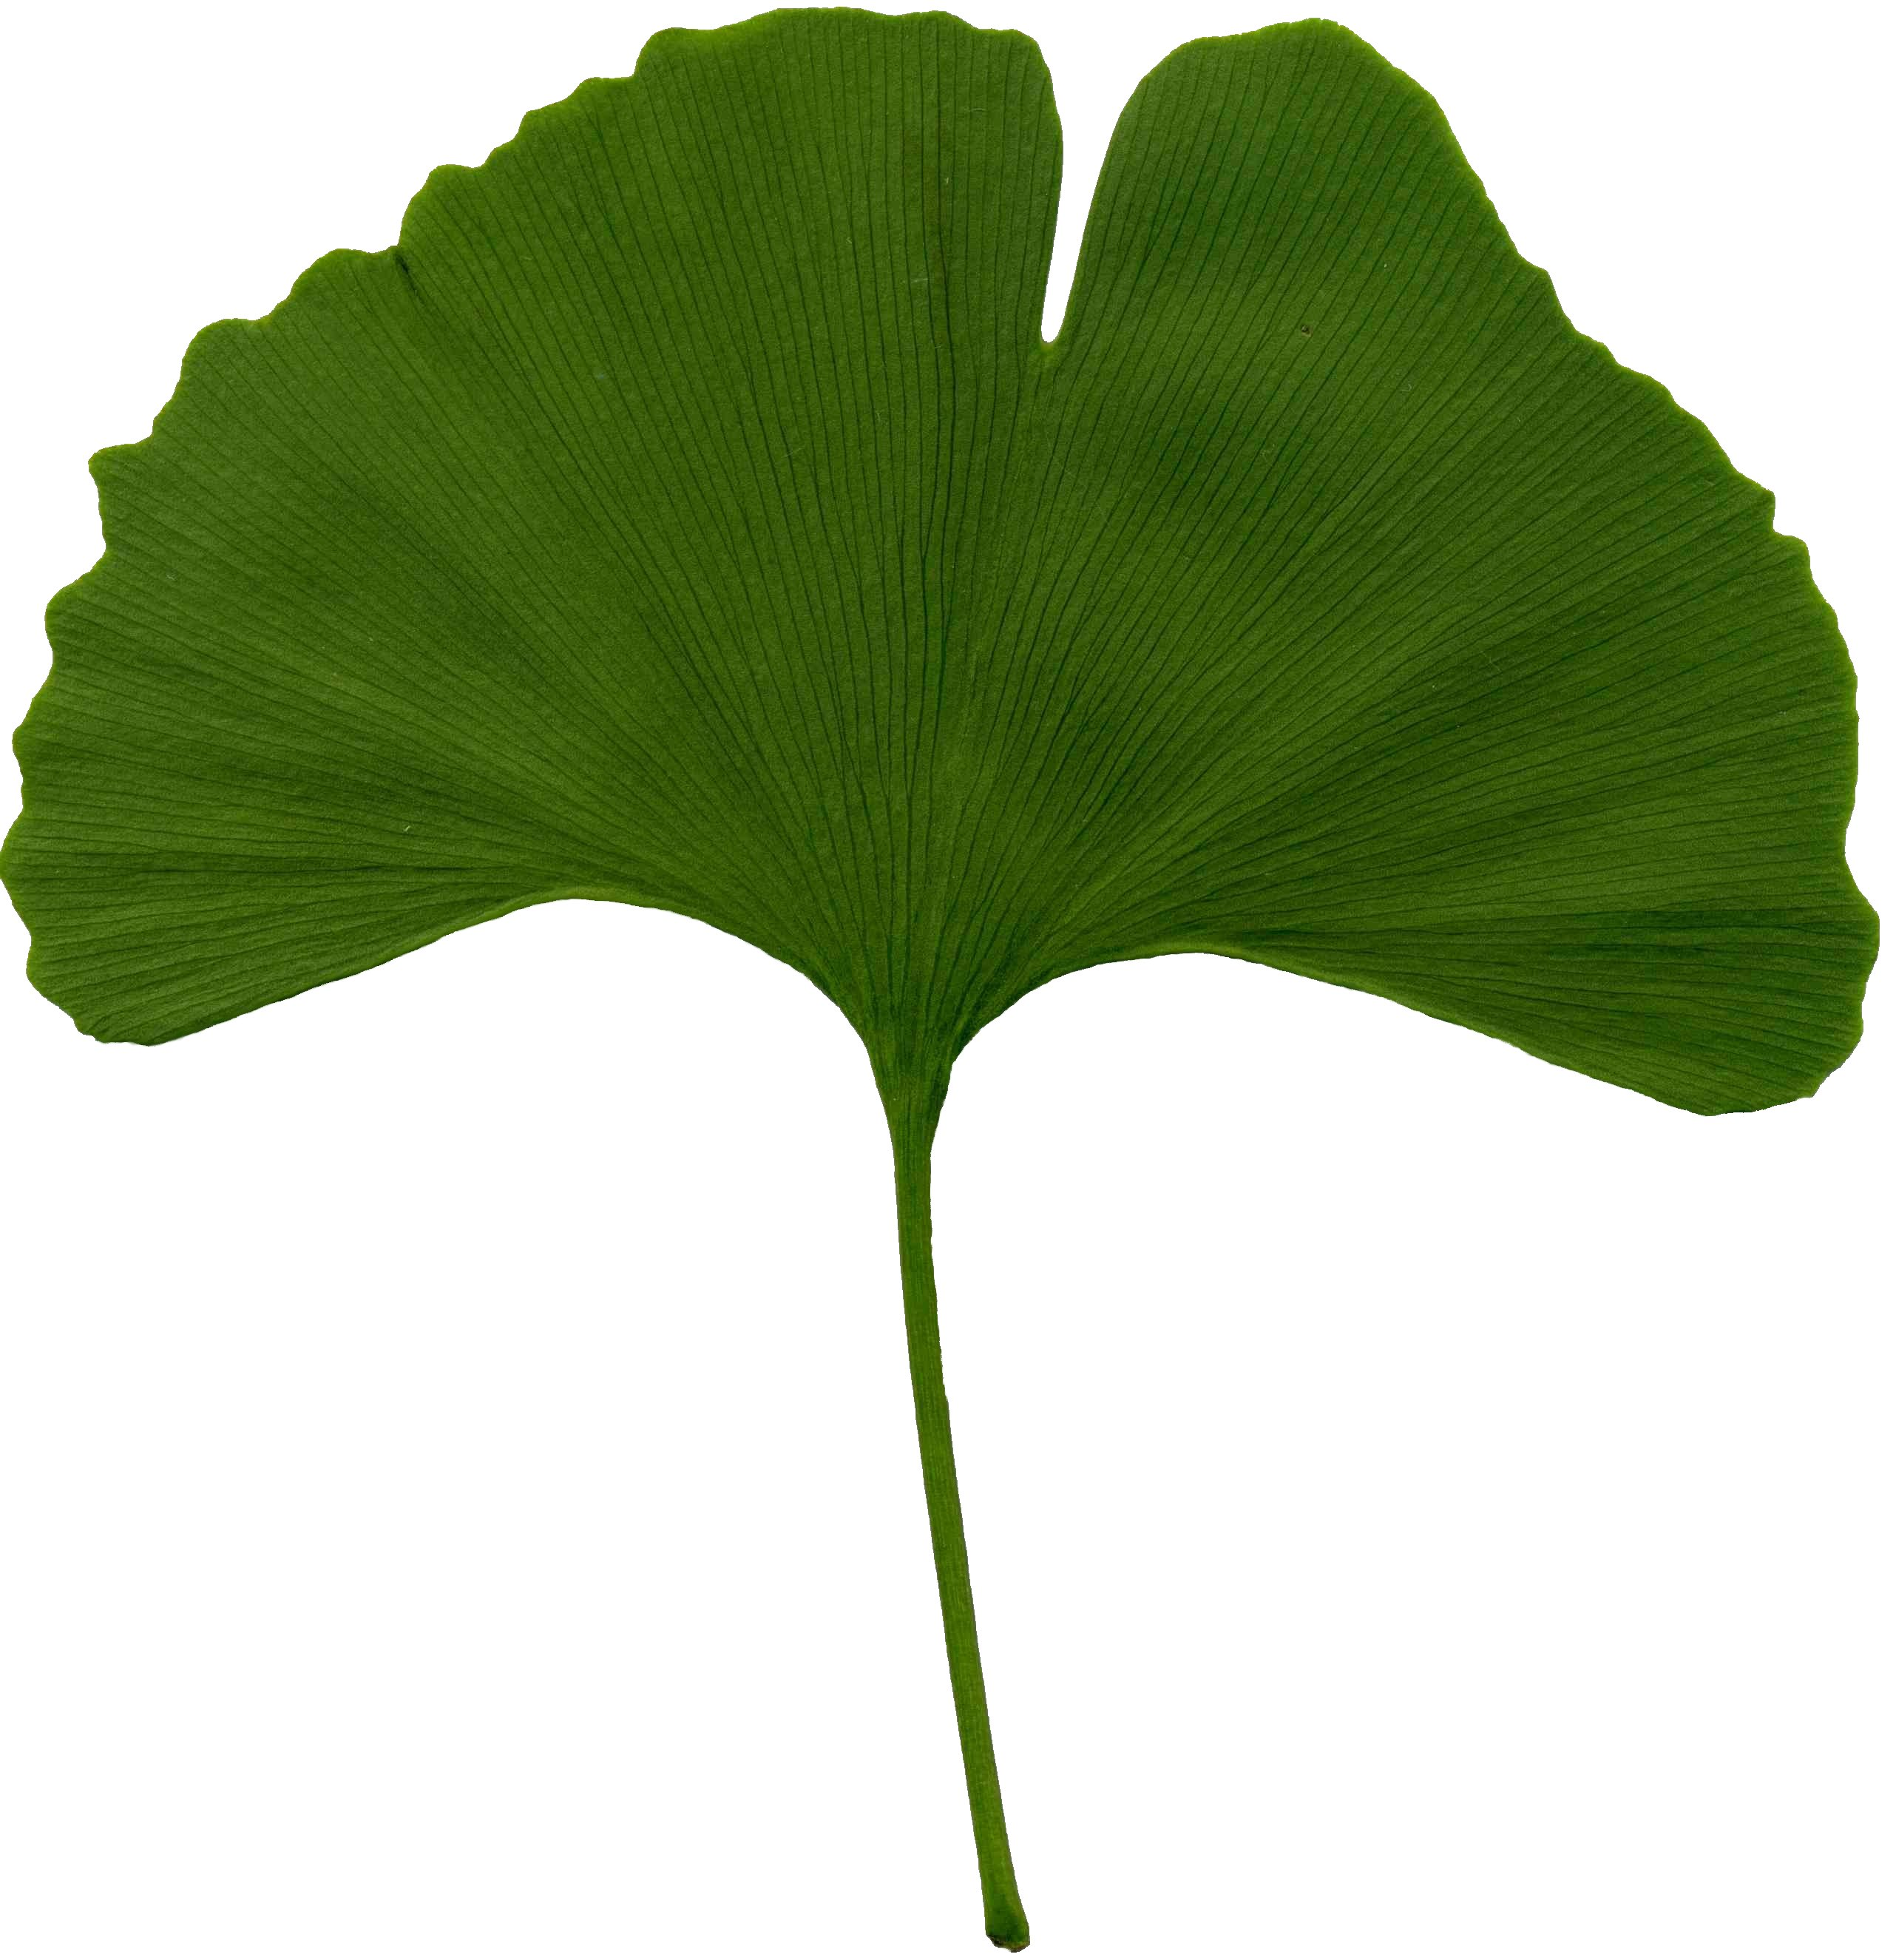 significance of ginkgo biloba essay Ginkgolide b specifically it is extracted from the root bark and leaves of the ginkgo biloba (ginkyo meaning silver apricot) tree found native in china.